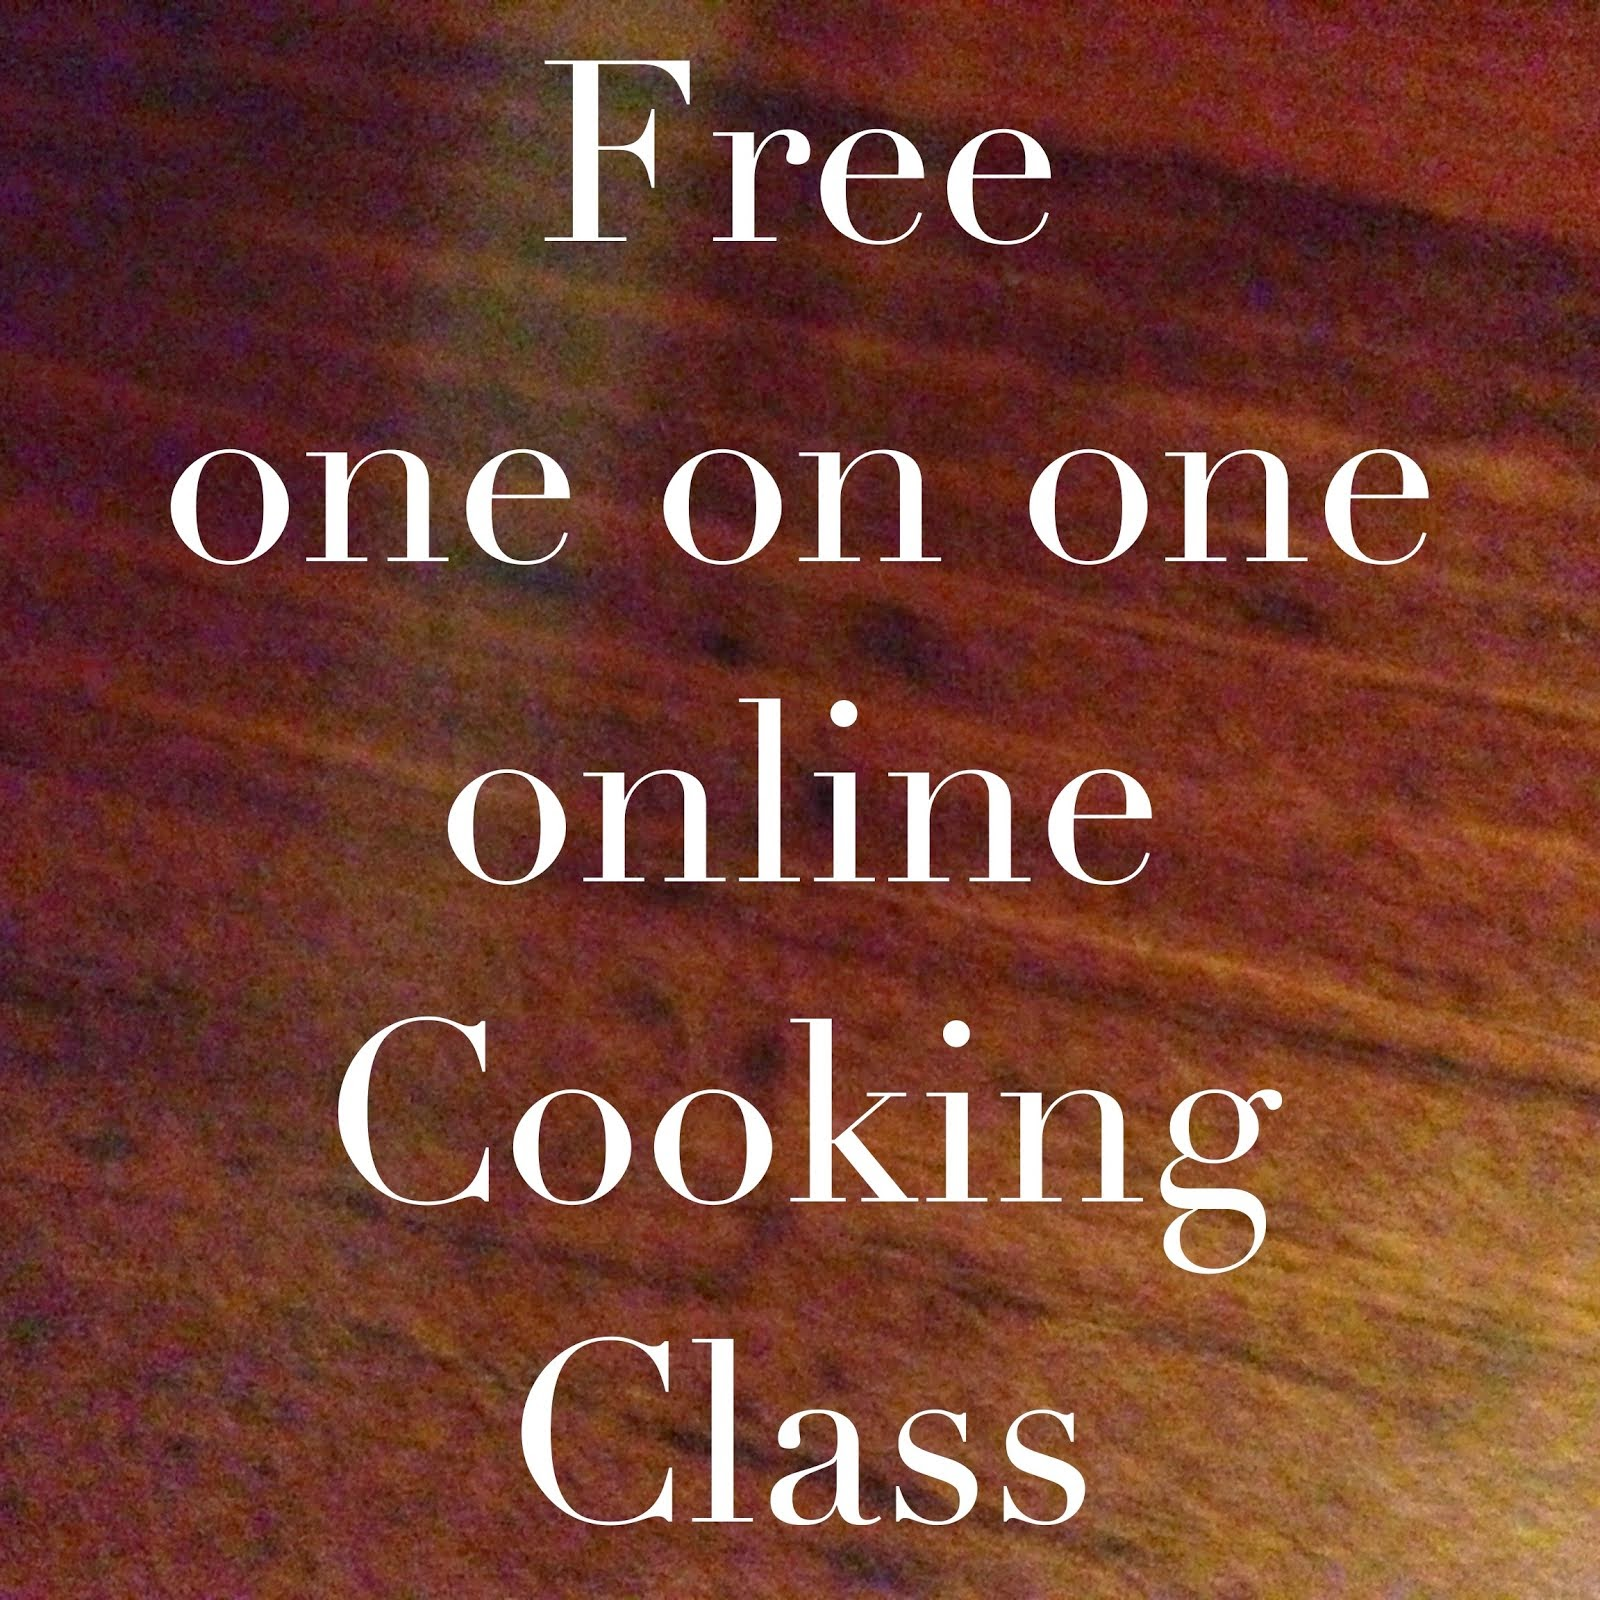 FREE COOKING CLASS